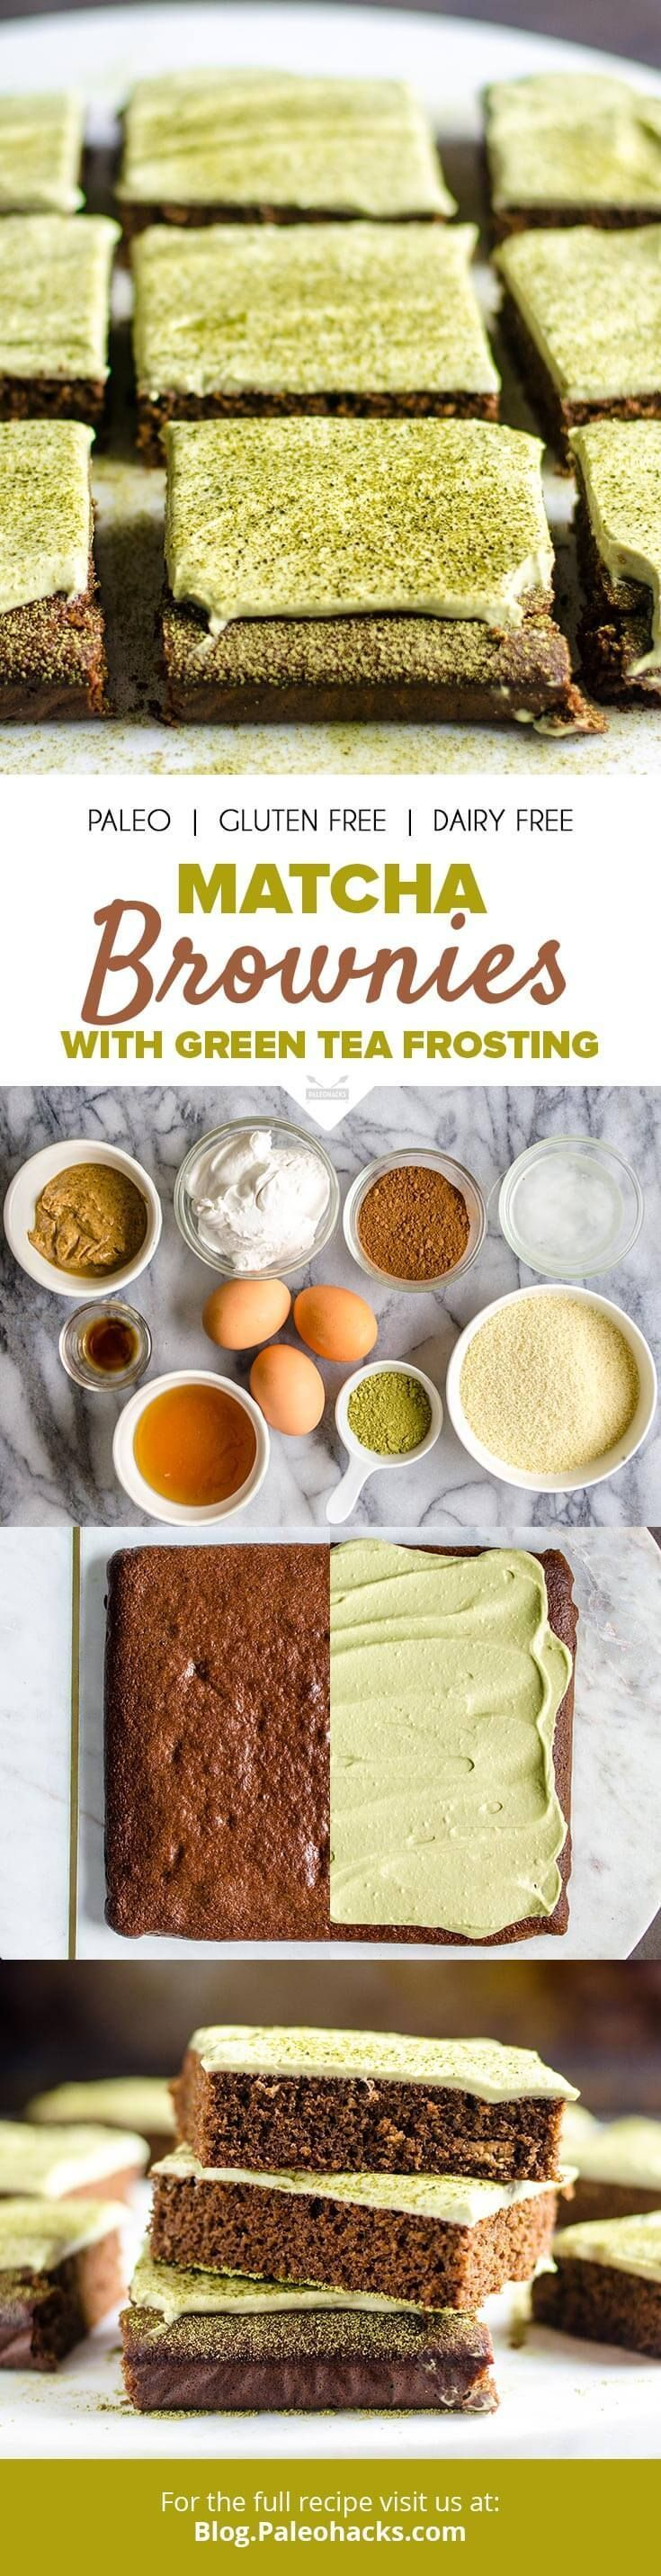 Whip up these heavenly matcha brownies covered in a velvety smooth matcha frosting. Get the recipe here: http://paleo.co/matchabrownie